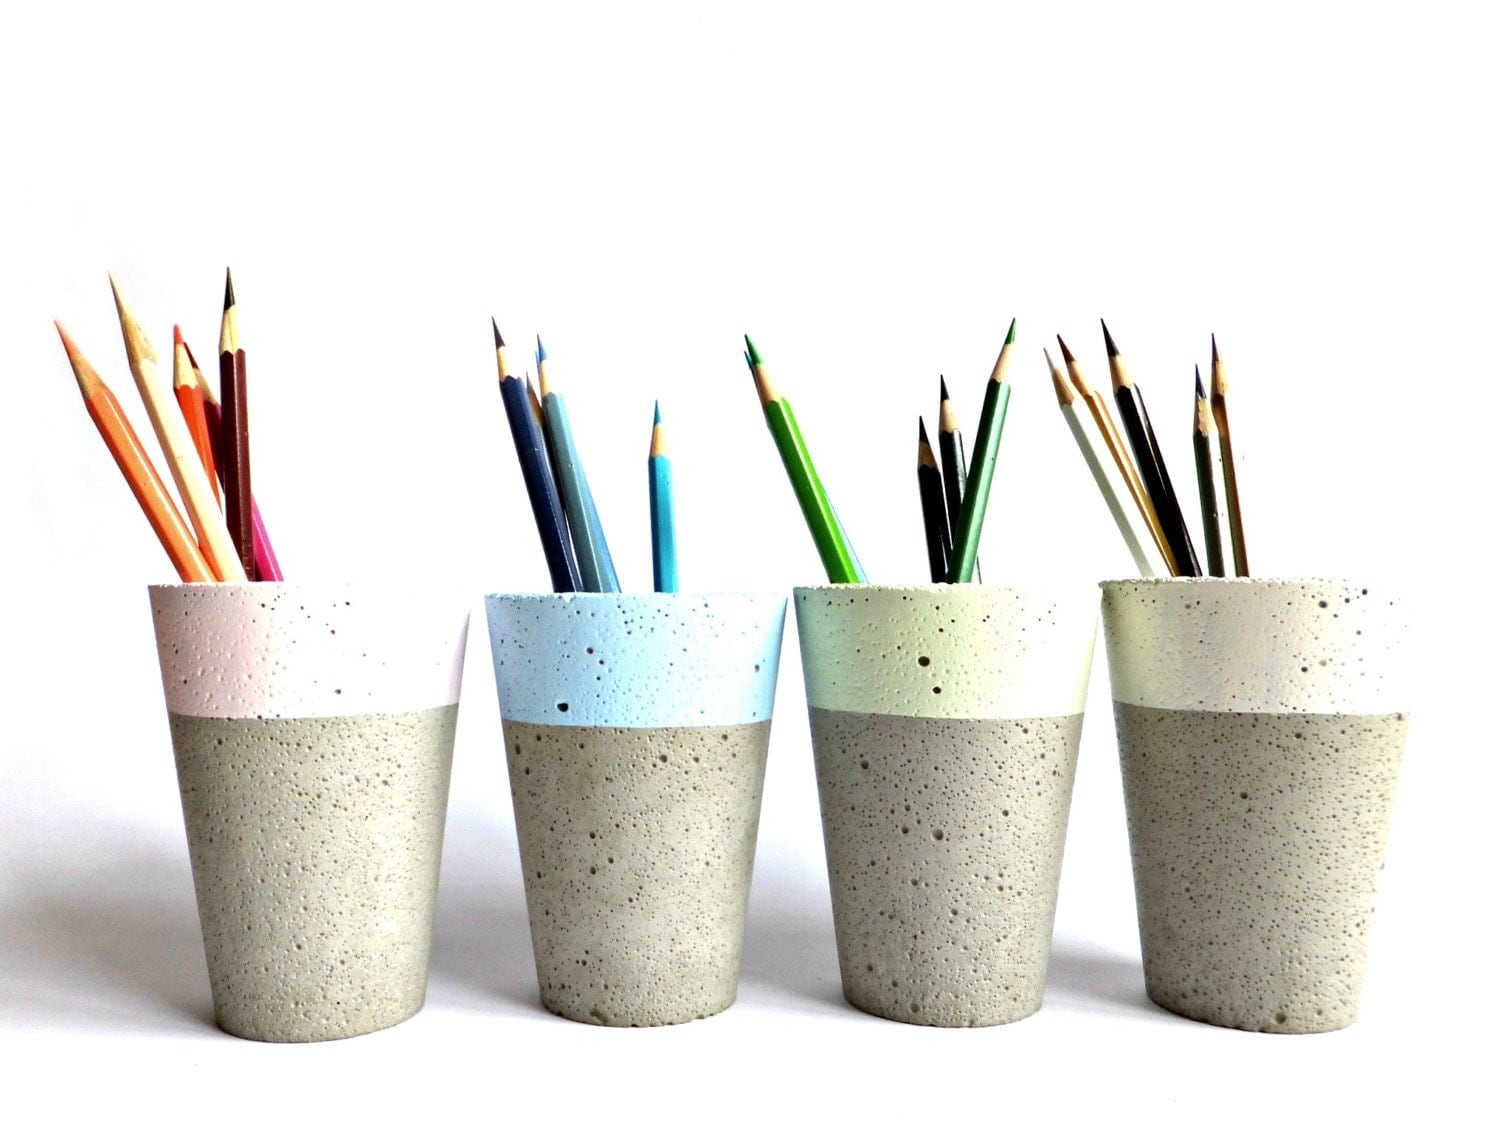 pastel concrete pencil holder modern cup home decor minimalist